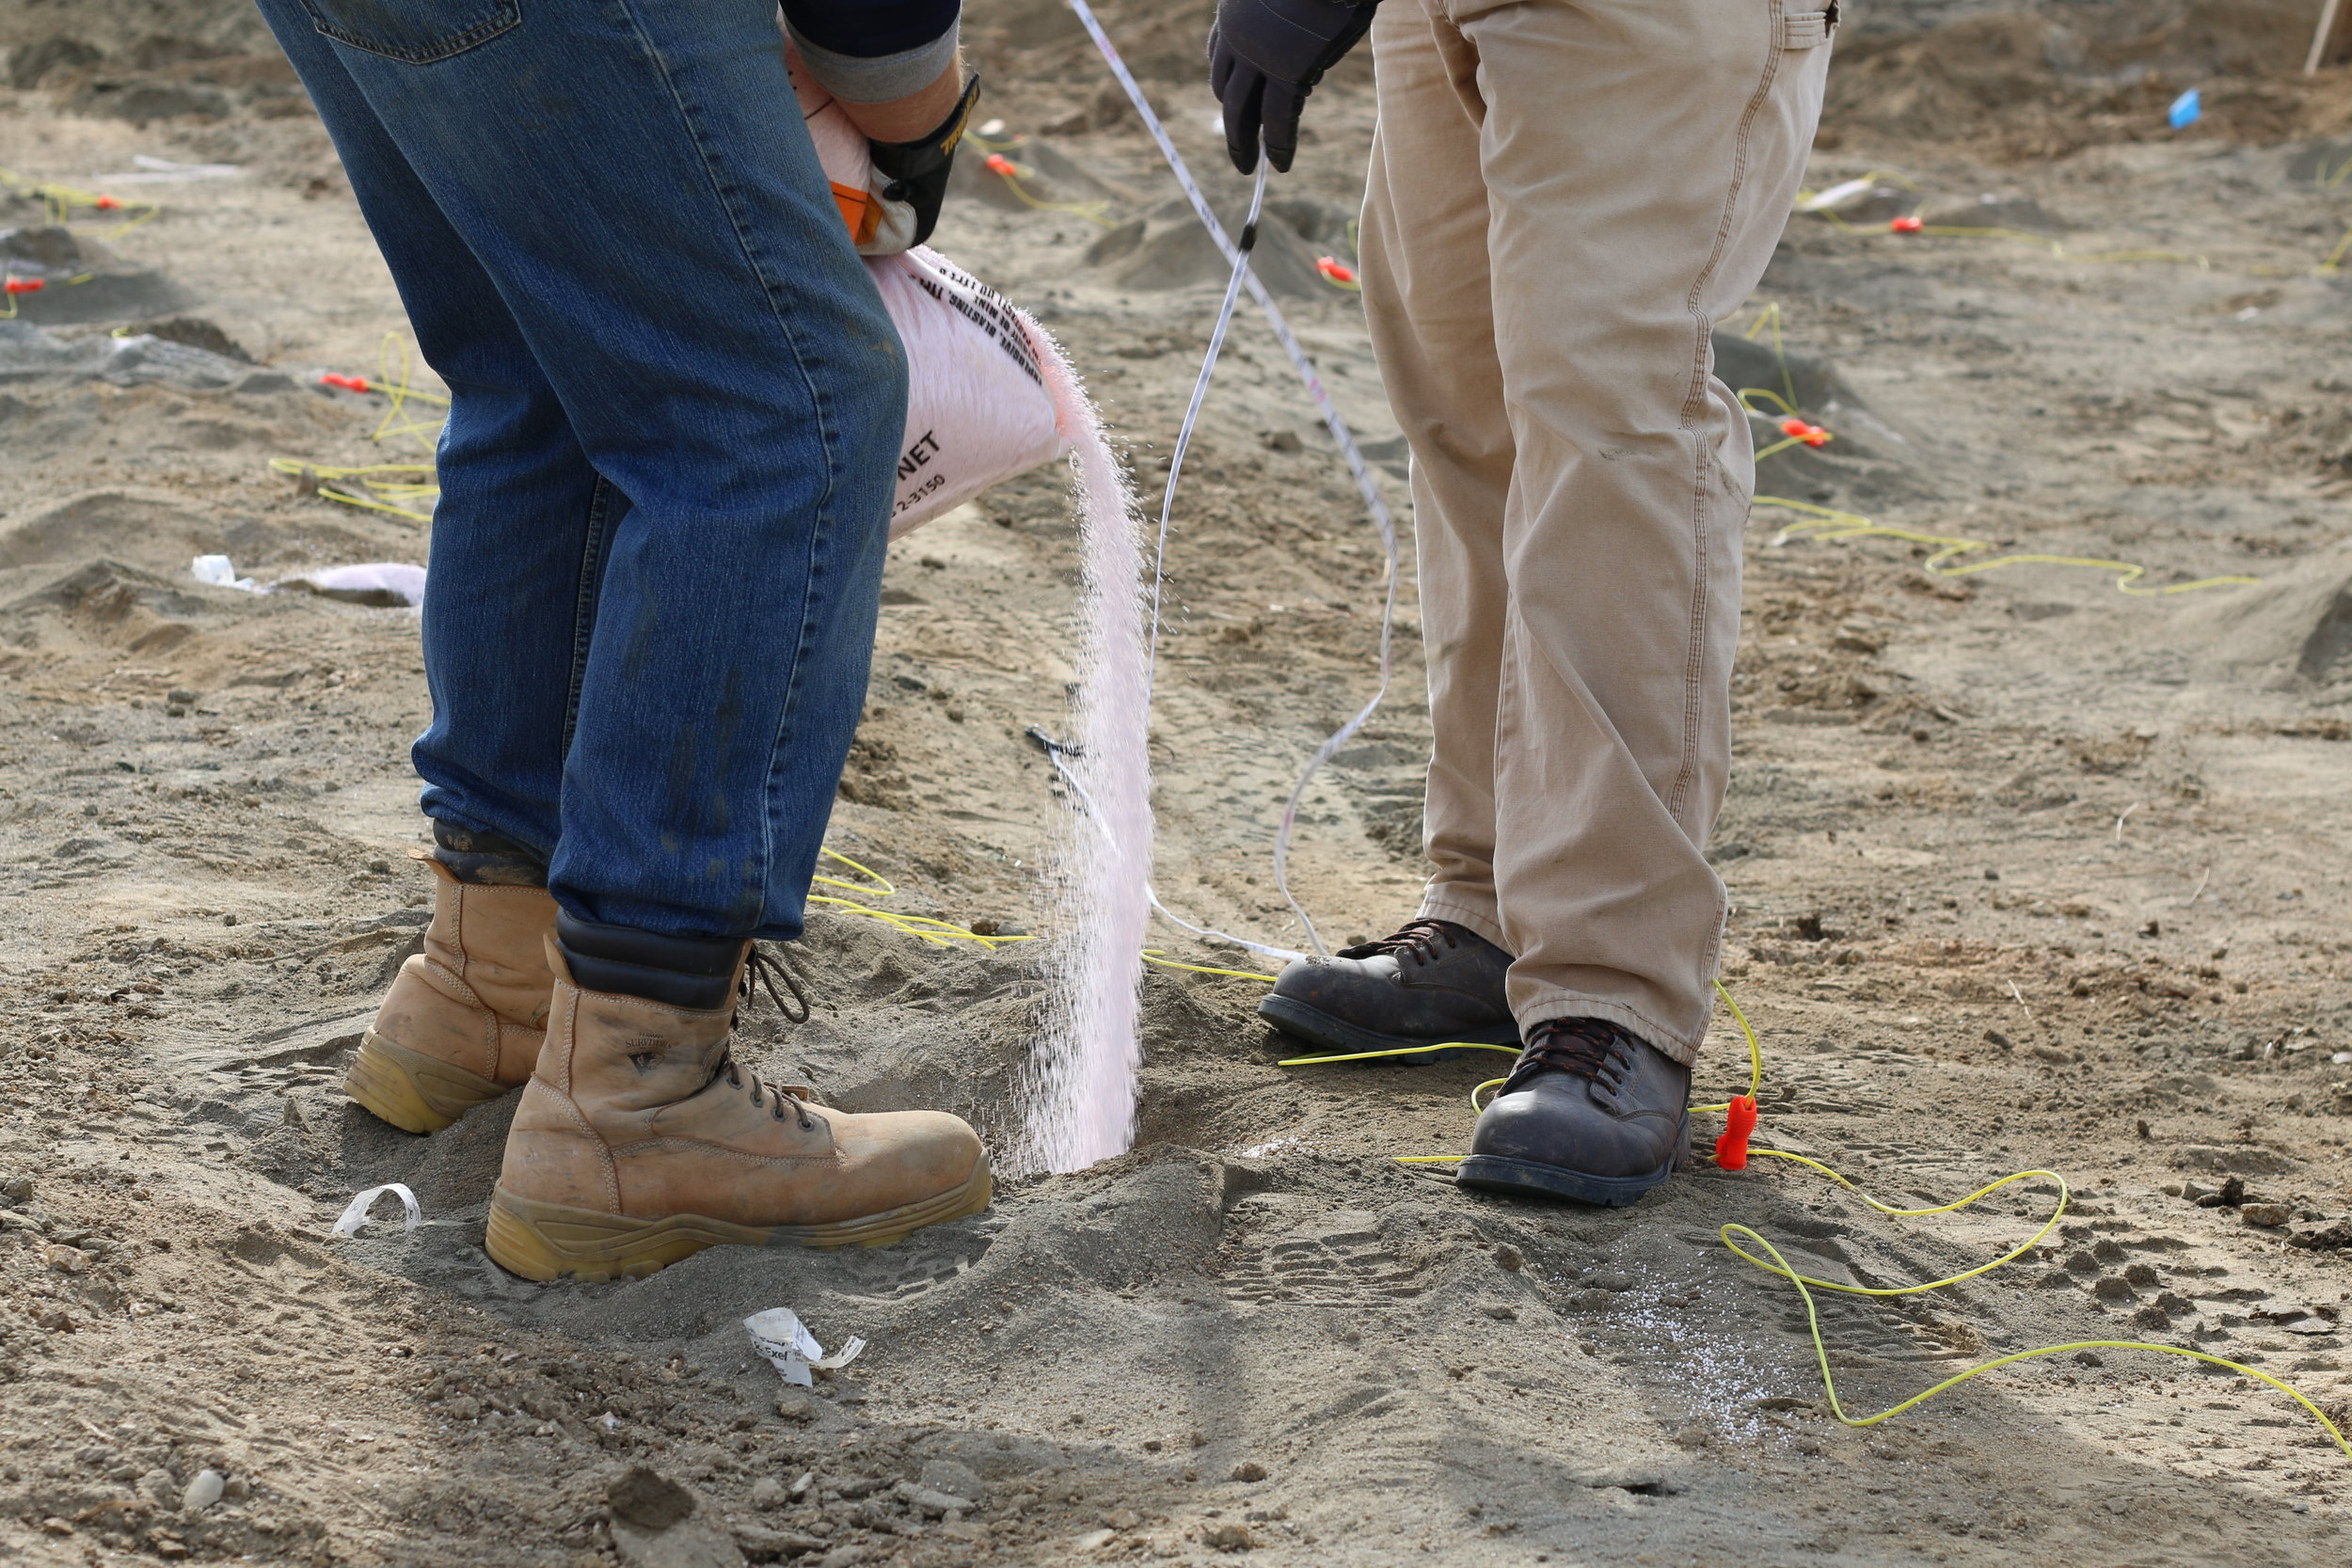 workers pouring explosive material into drilled holes at a project site